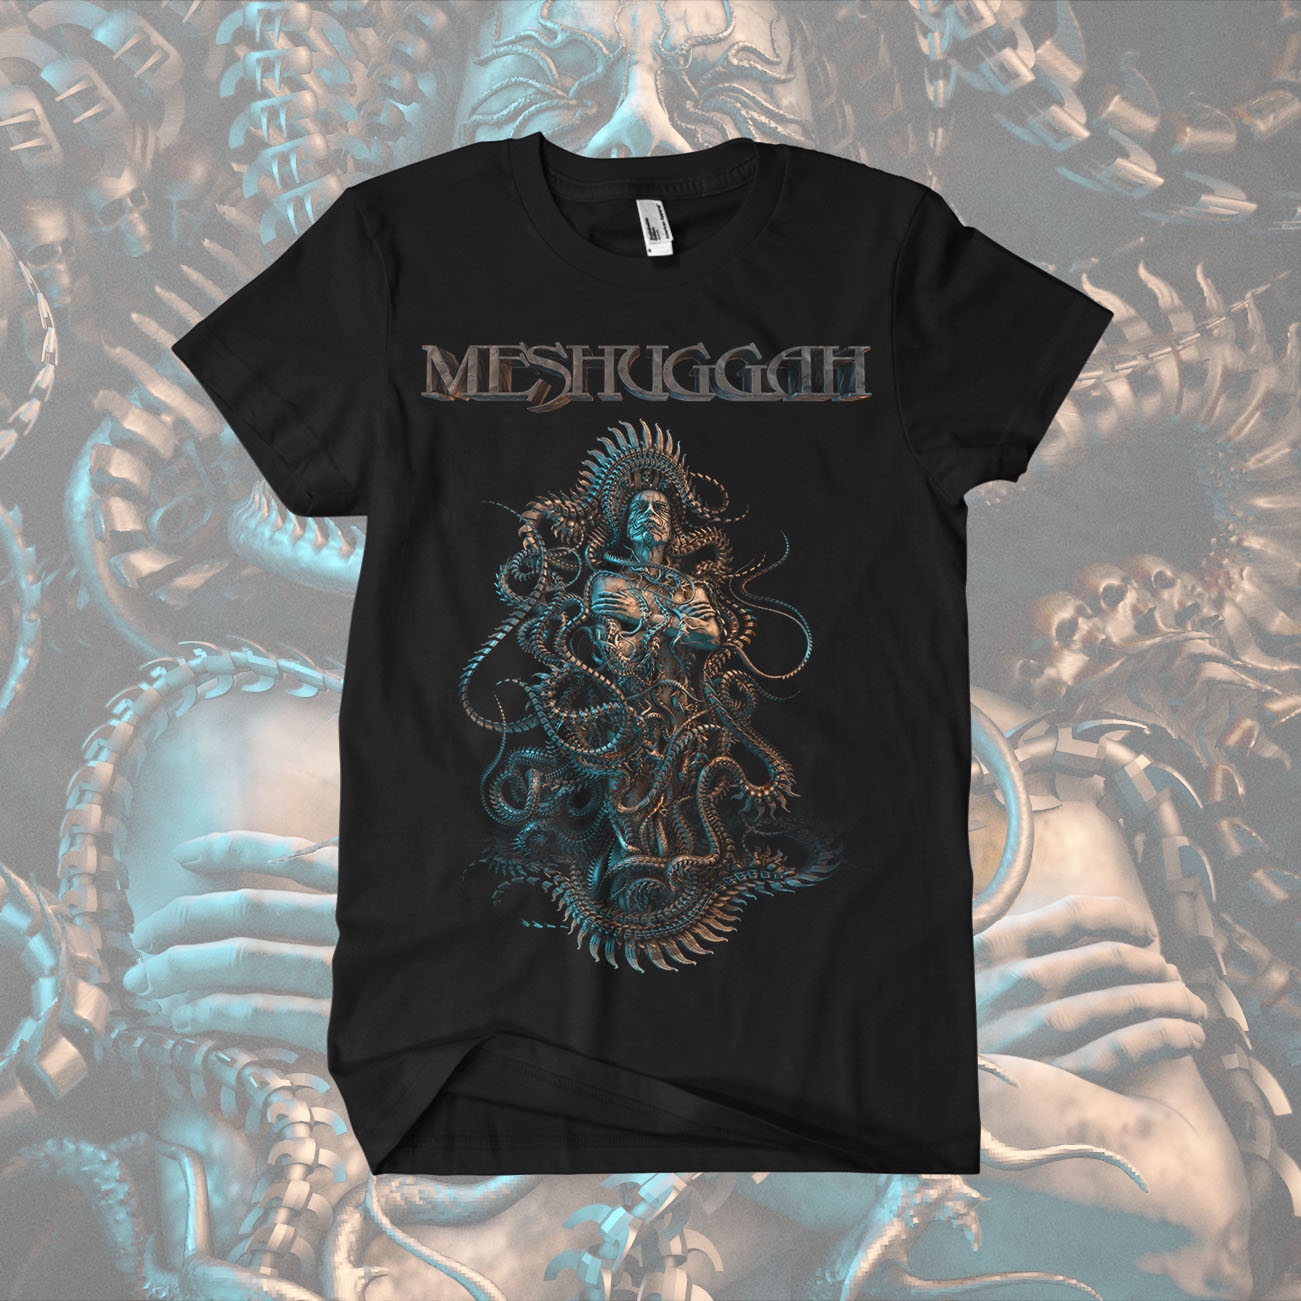 Meshuggah - The Violent Sleep of Reason T-shirt - Meshuggah